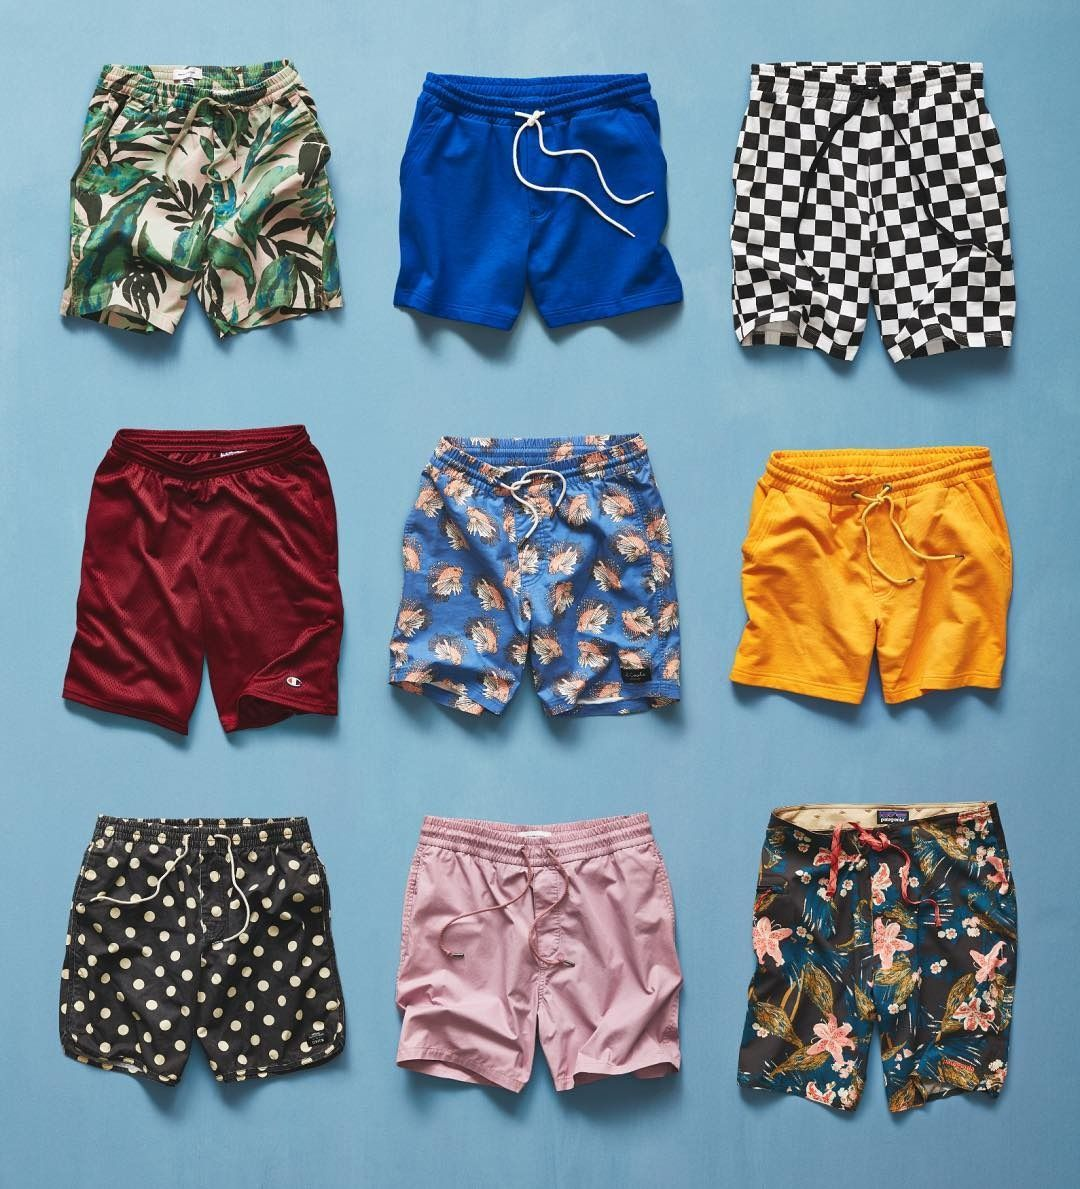 "Urban Outfitters Men's (@urbanoutfittersmens) on Instagram: ""When it's this warm, it's time to ditch those joggers. New swimwear and shorts are online now. 